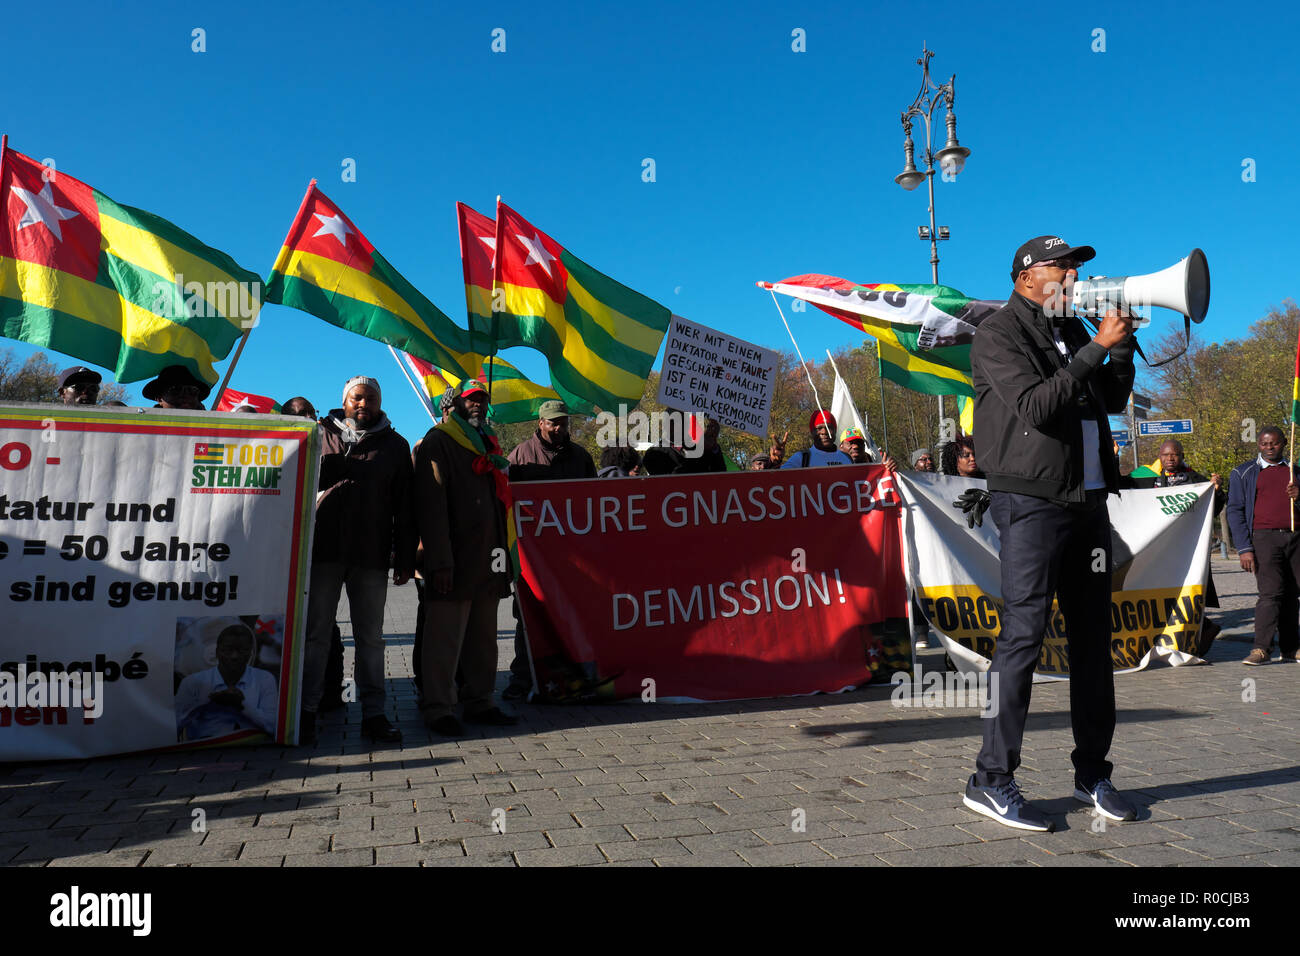 Berlin Germany - Protestors gather to demonstrate against the visit of Faure Gnassingbé the President of Togo - Stock Image